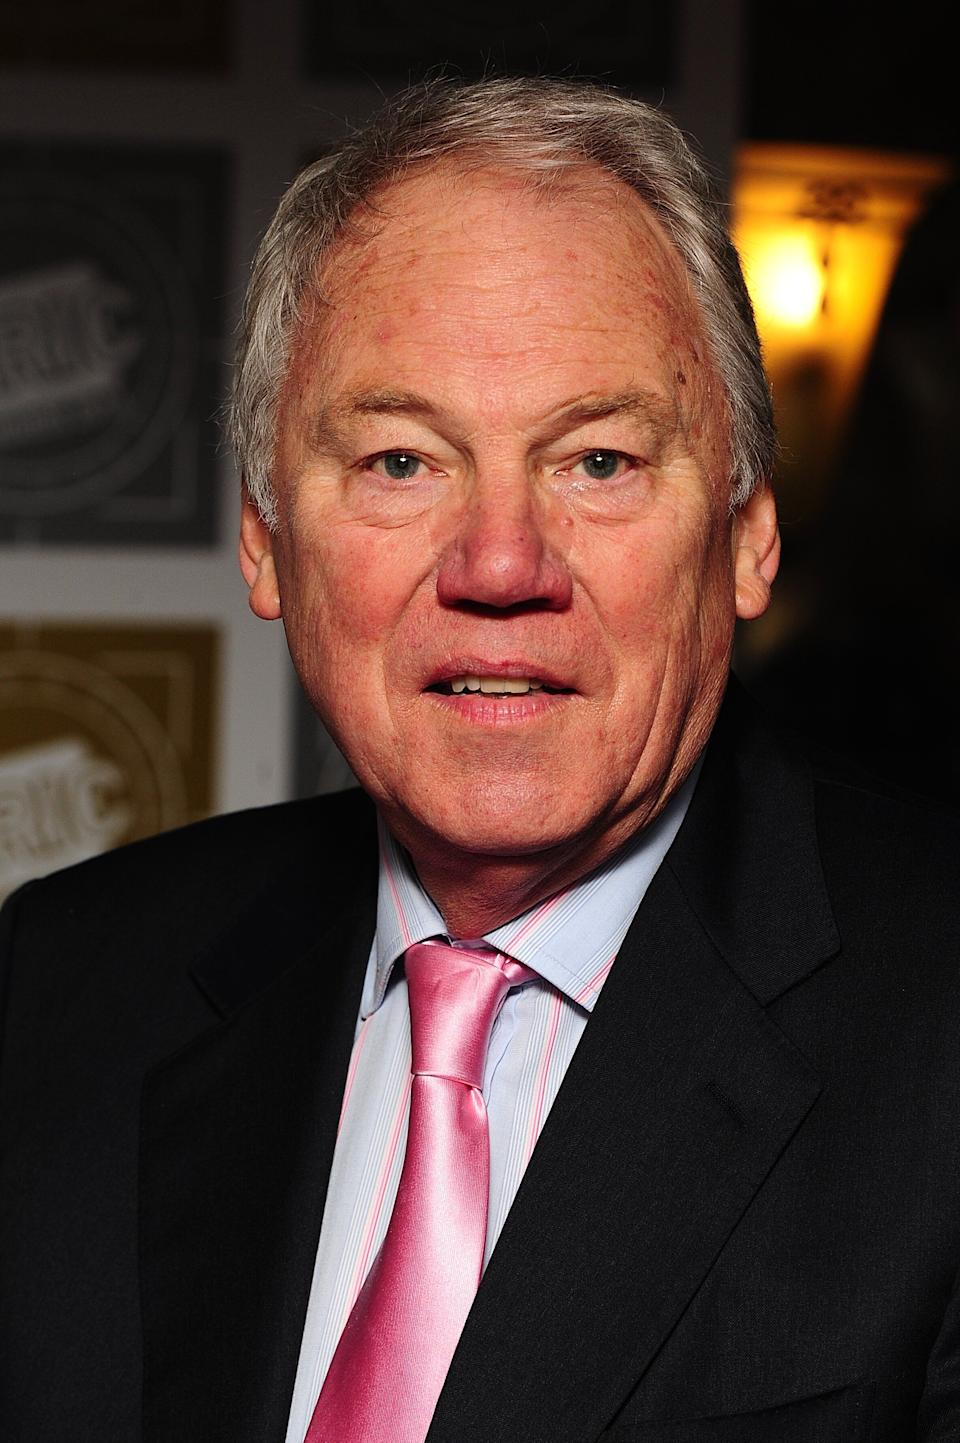 <strong>Peter Sissons (1942-2019)</strong><br />The journalist's broadcasting career spanned more than 40 years and he appeared as a newsreader on ITN and the BBC.